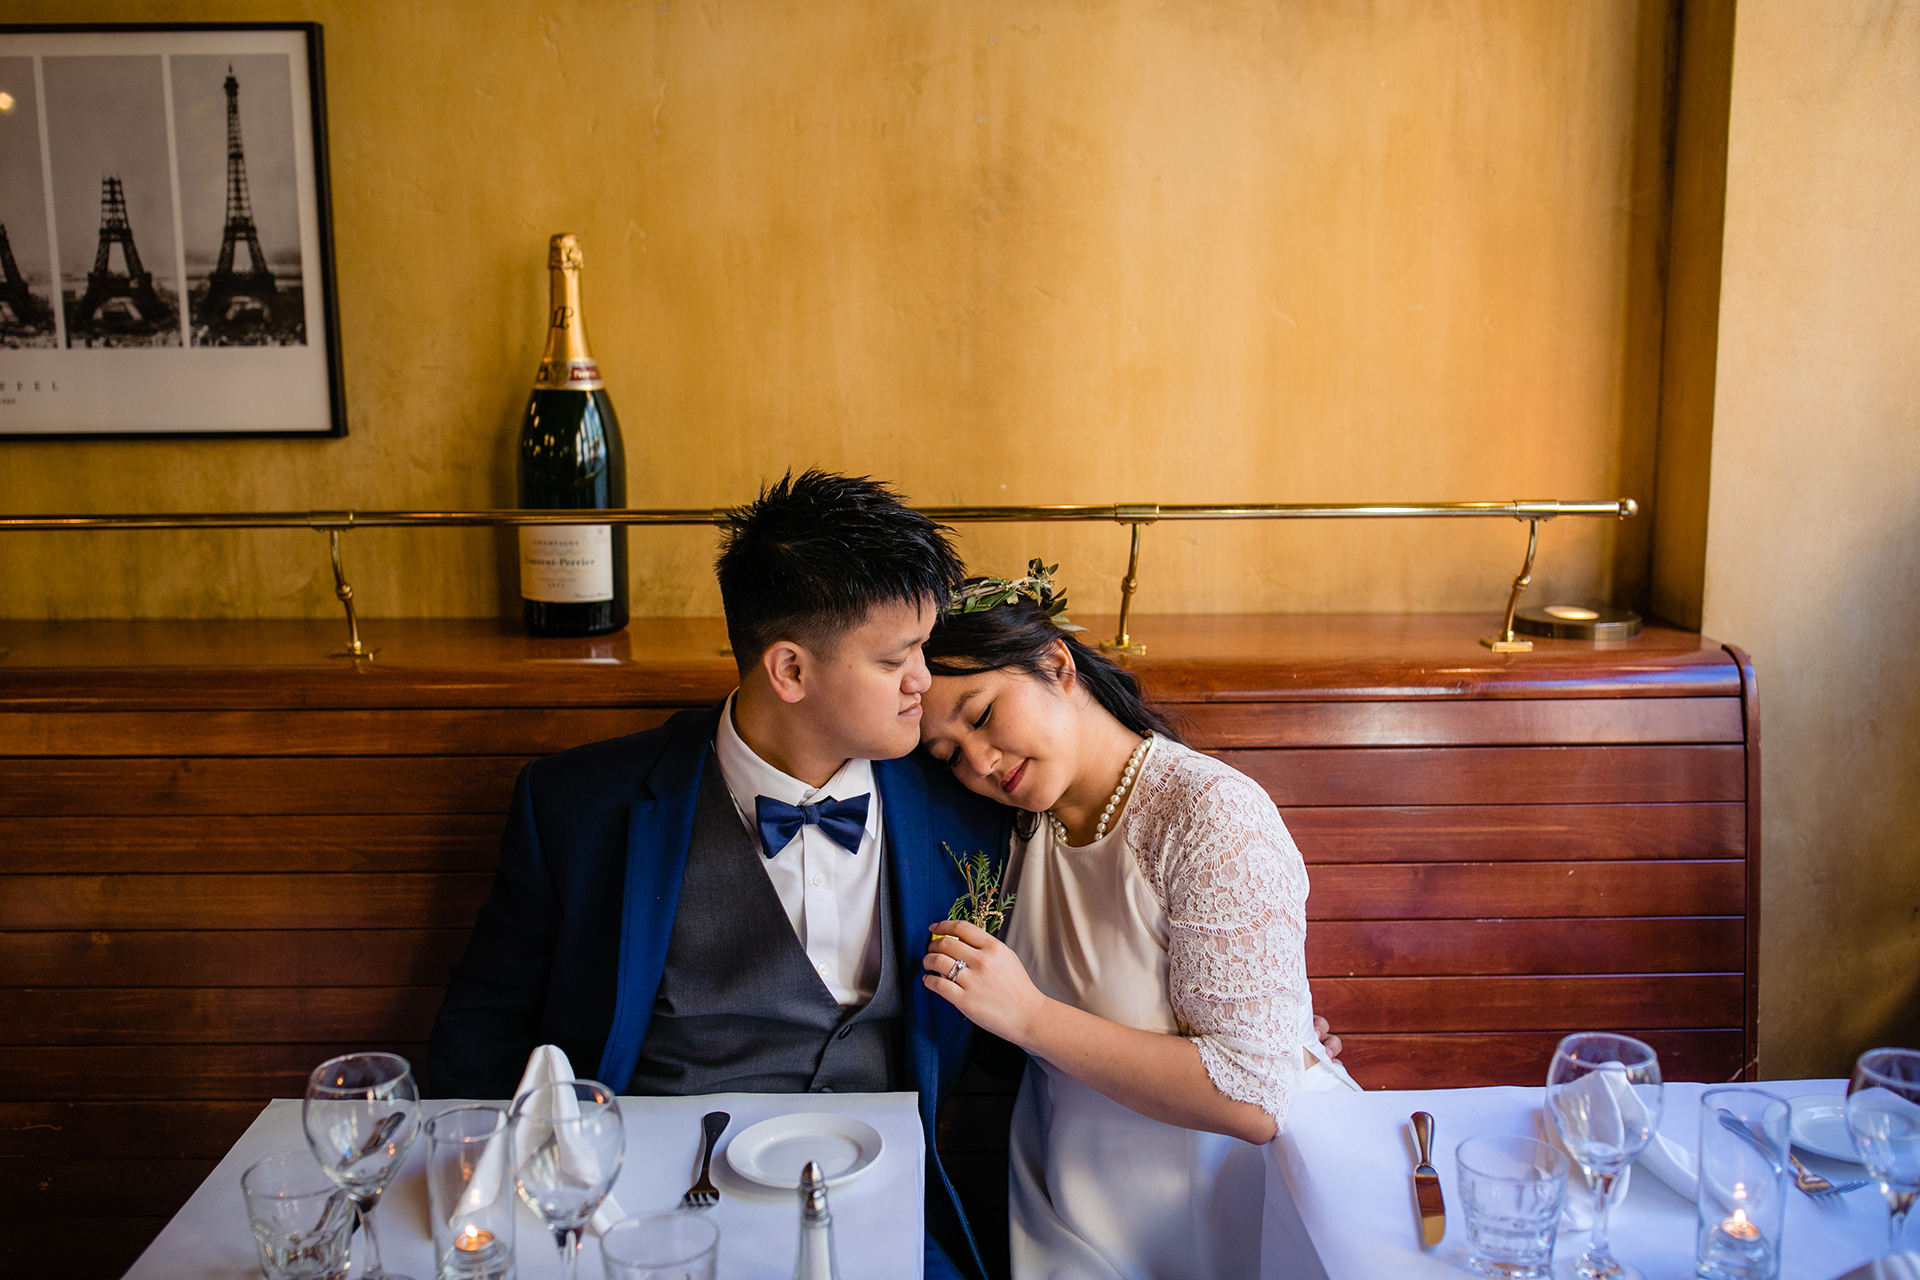 San Francisco Chinatown Restaurant Wedding Reception Venue Image | The couple shares an intimate moment with one another at the China Town restaurant